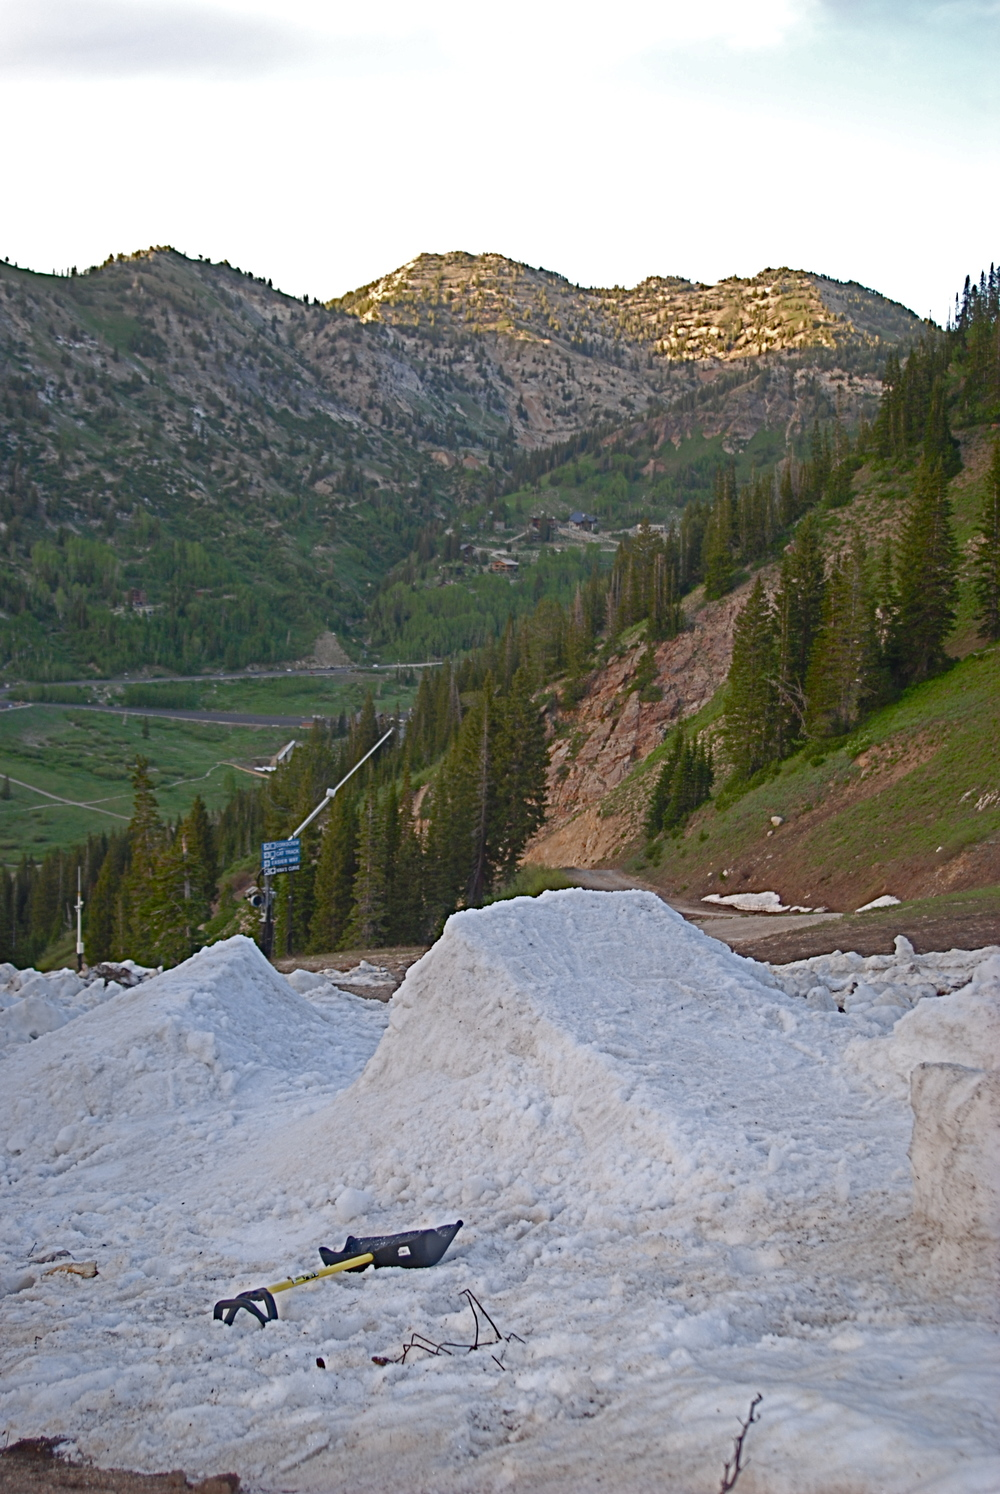 The union hiked up Alta mid June to see if there was anything to shred and stumbled across a spot where some snow had been cleared off an access road and piled into one area, with about two hours of work we dialed in this double came back the next day and had a few hours of fun.